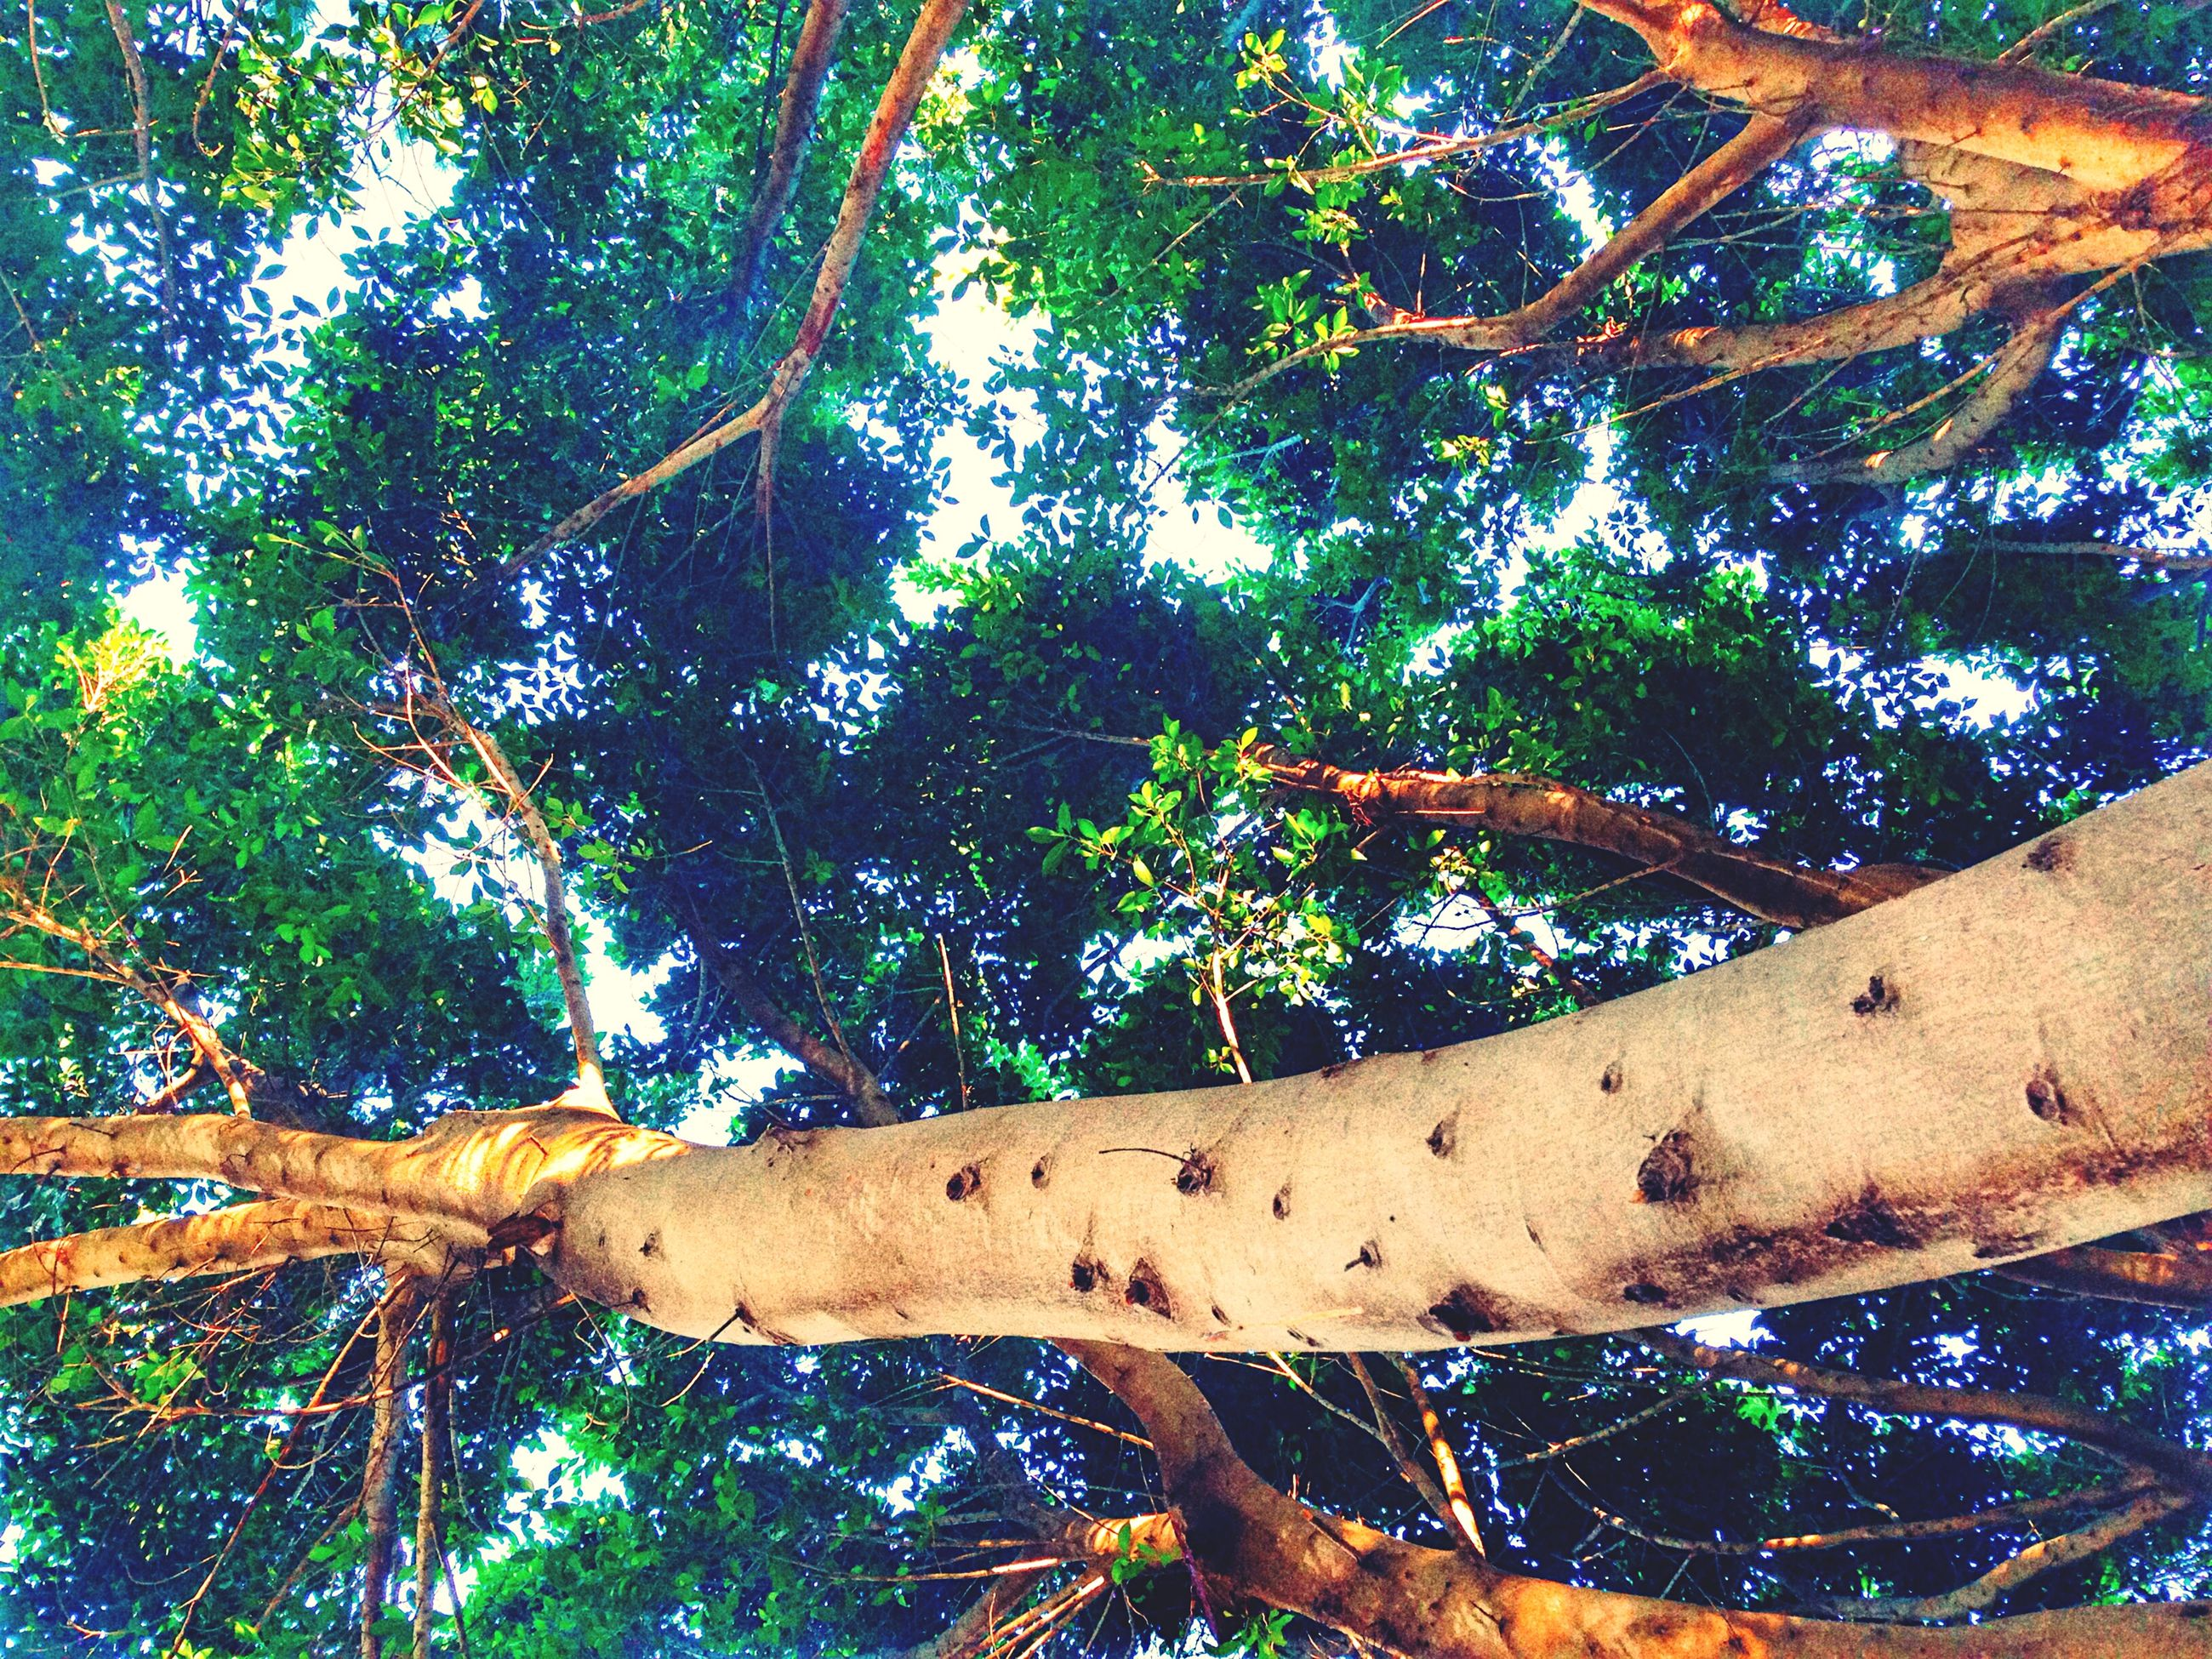 tree, branch, growth, nature, low angle view, tree trunk, tranquility, green color, wood - material, day, beauty in nature, forest, outdoors, no people, sunlight, built structure, scenics, water, blue, tranquil scene